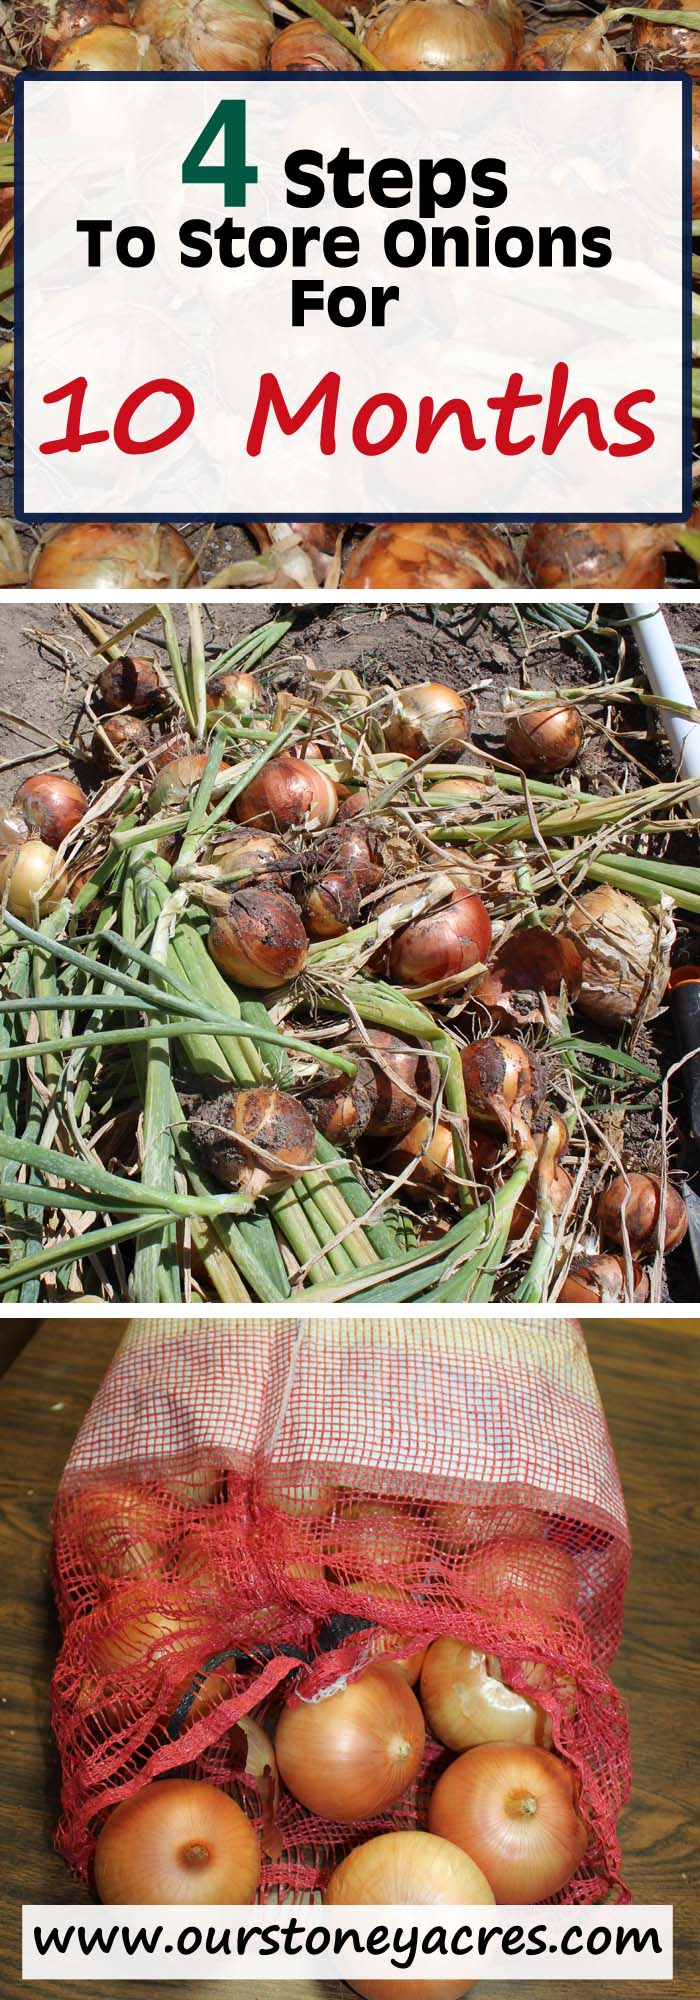 Curing and storing onions